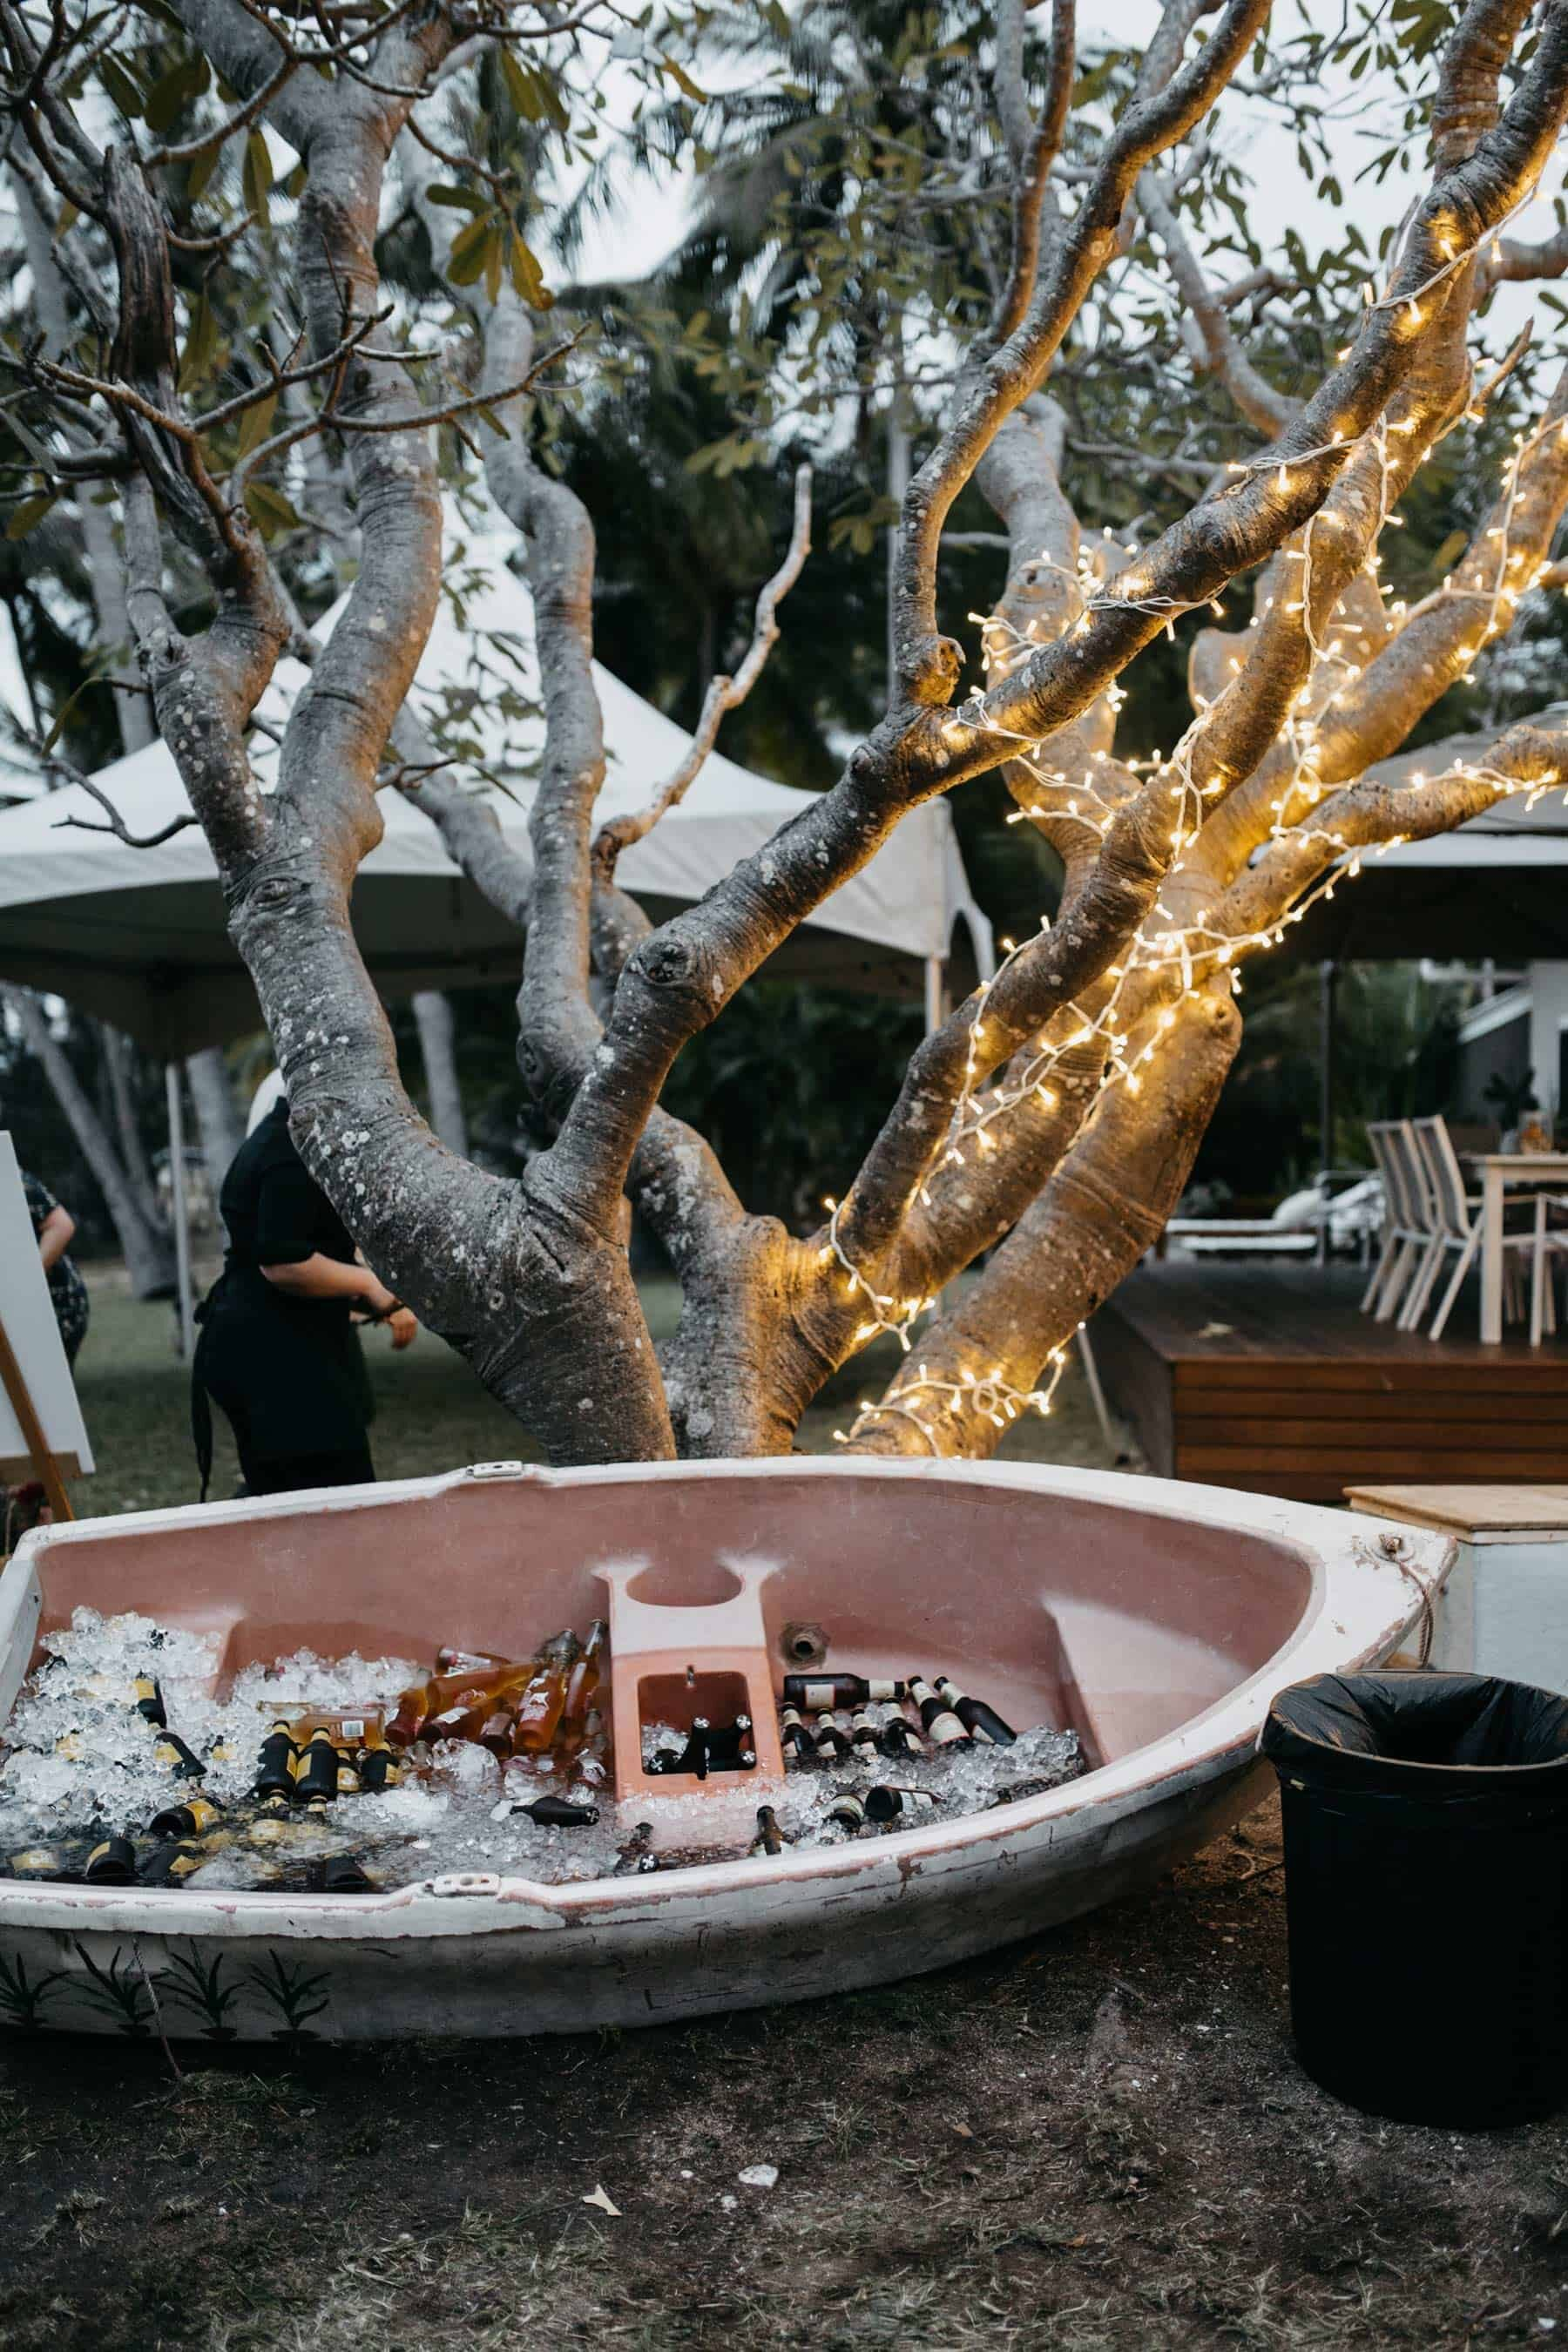 backyard wedding ideas - old boat used for drinks tub